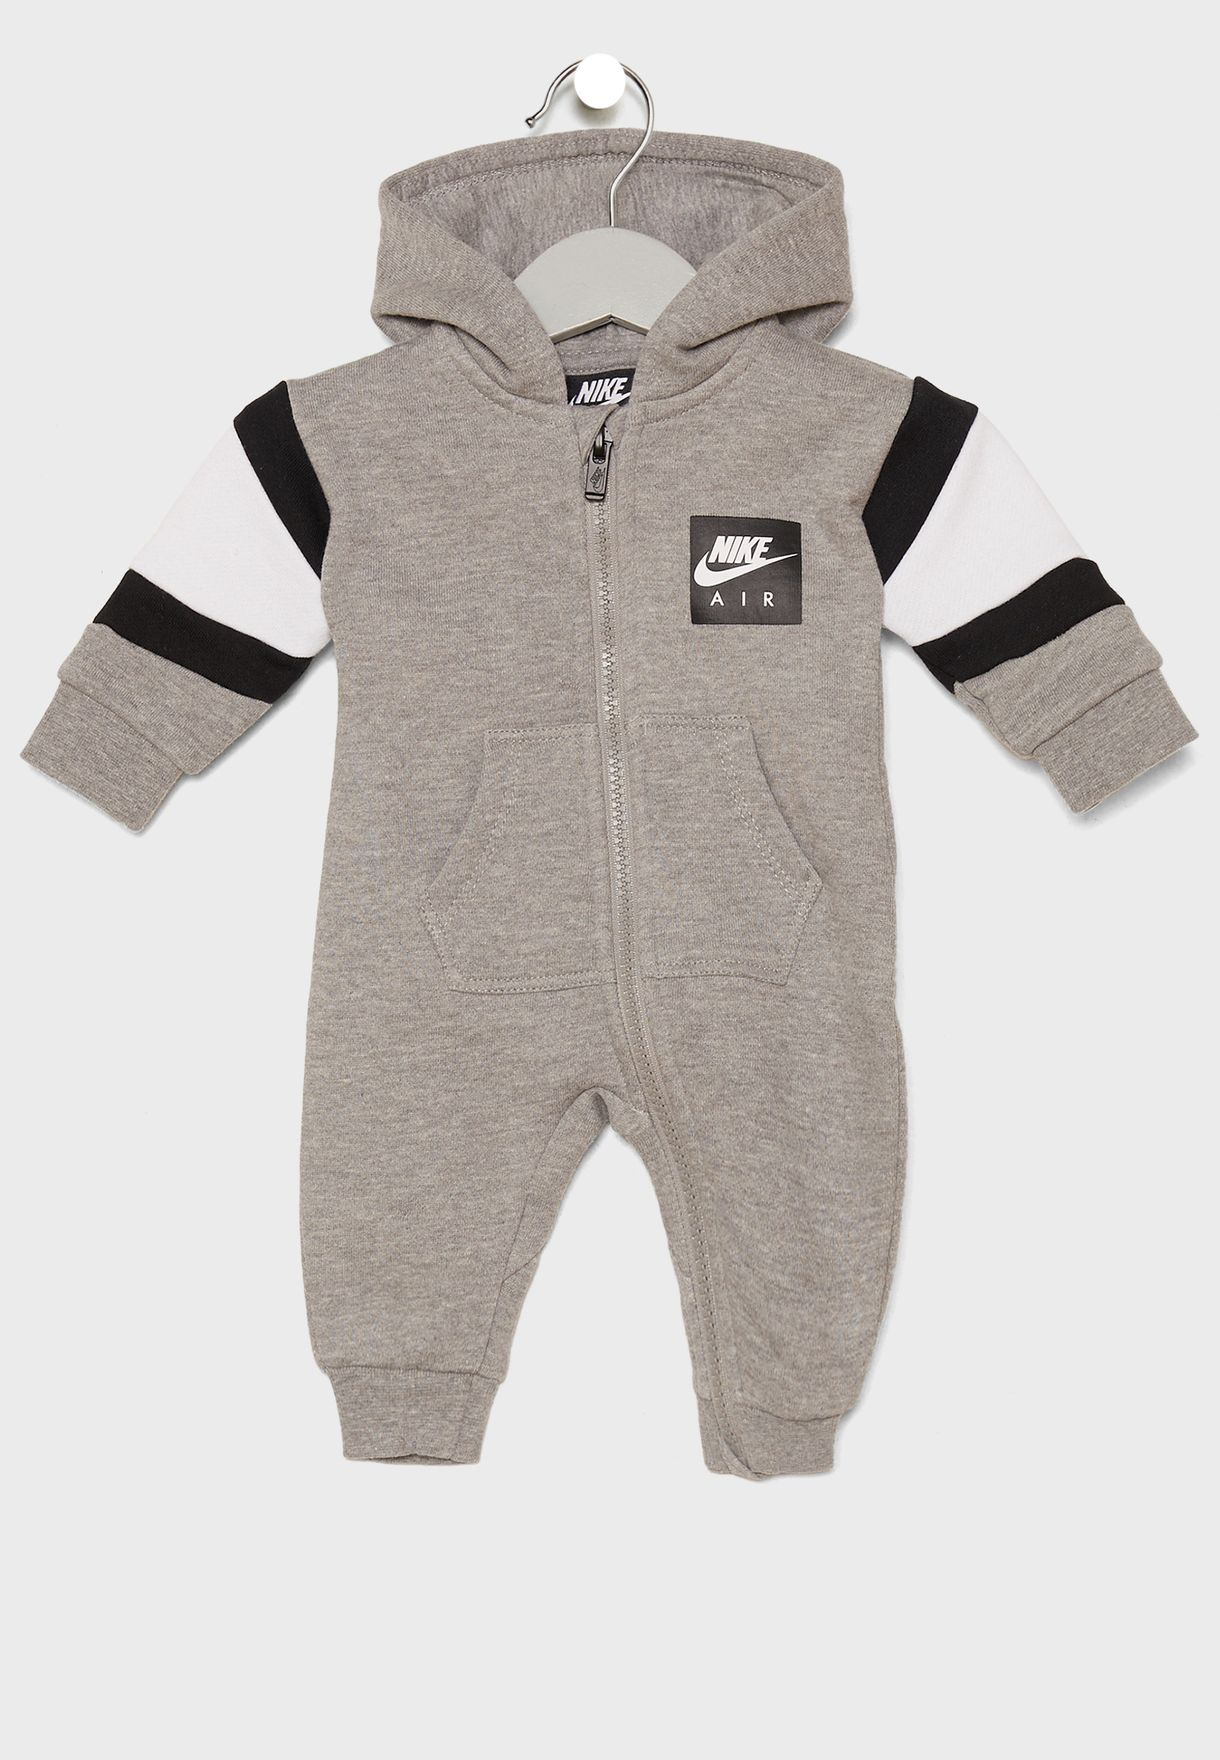 2292366b6466 Shop Nike grey Infant Air Fleece Romper 56E084-042 for Kids in UAE ...